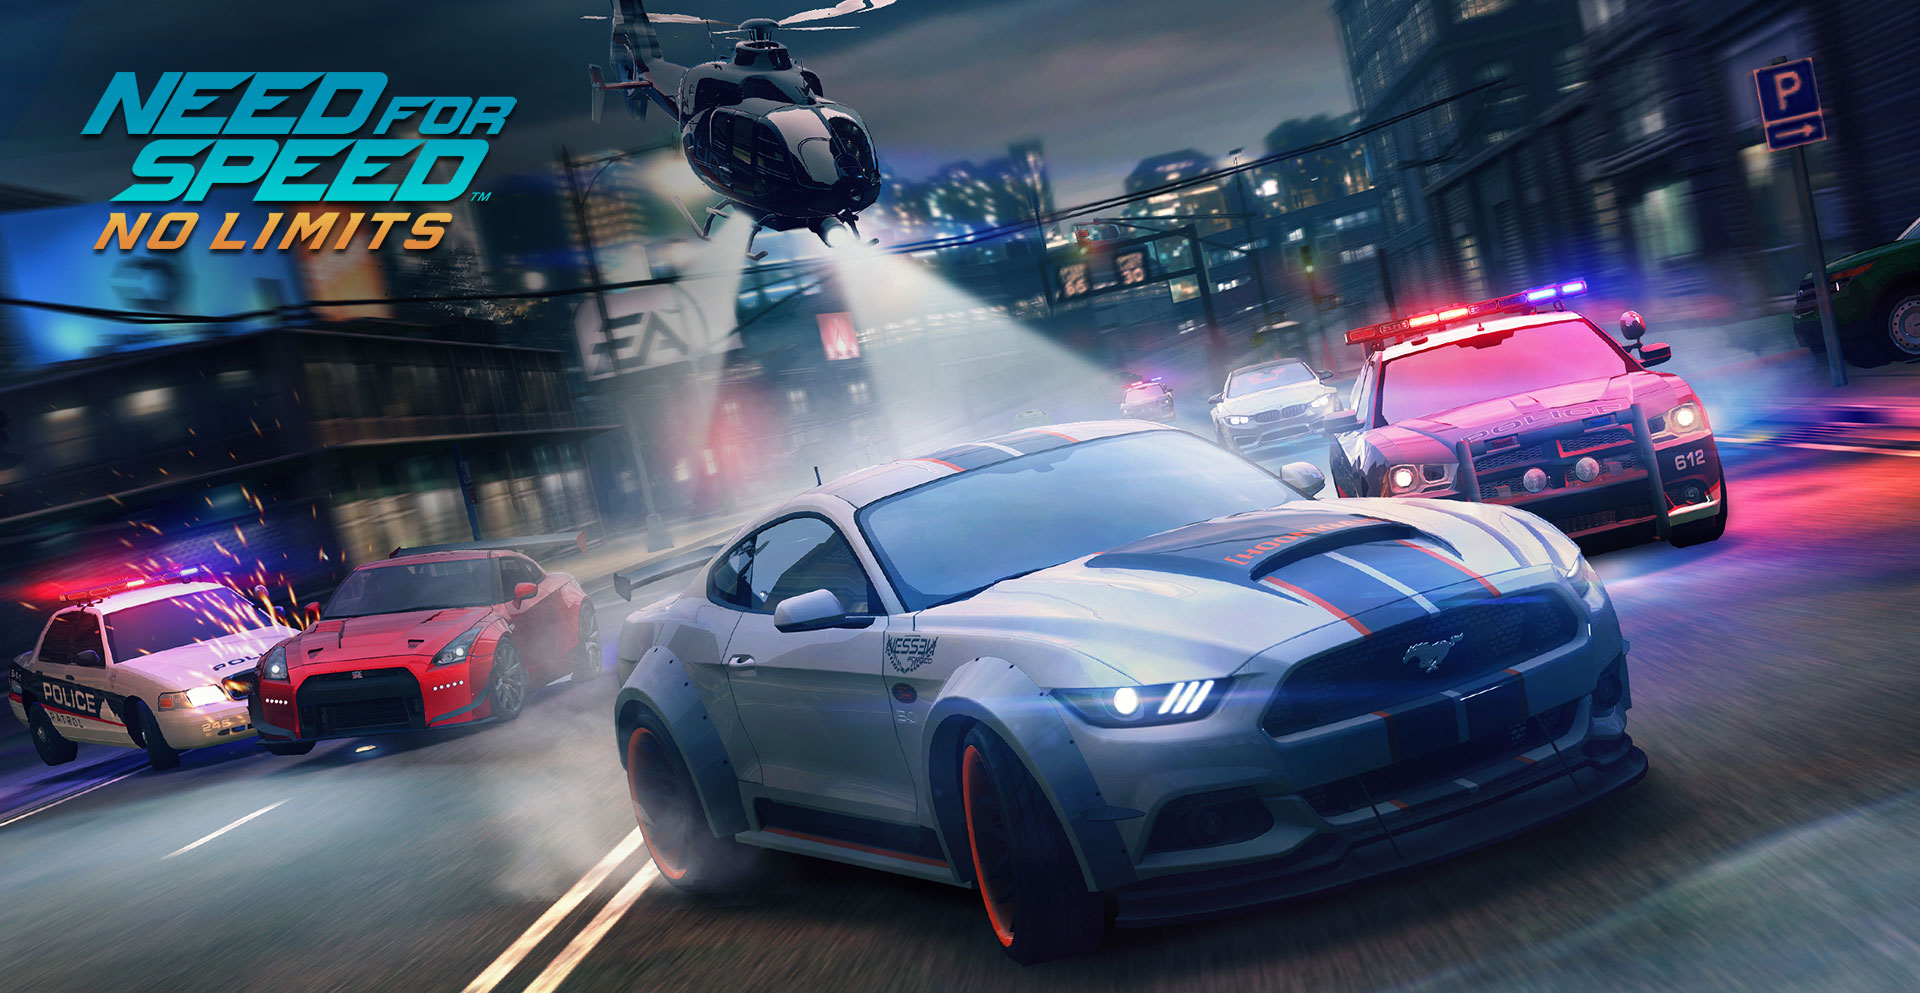 Need for speed no limits hack apk 2019